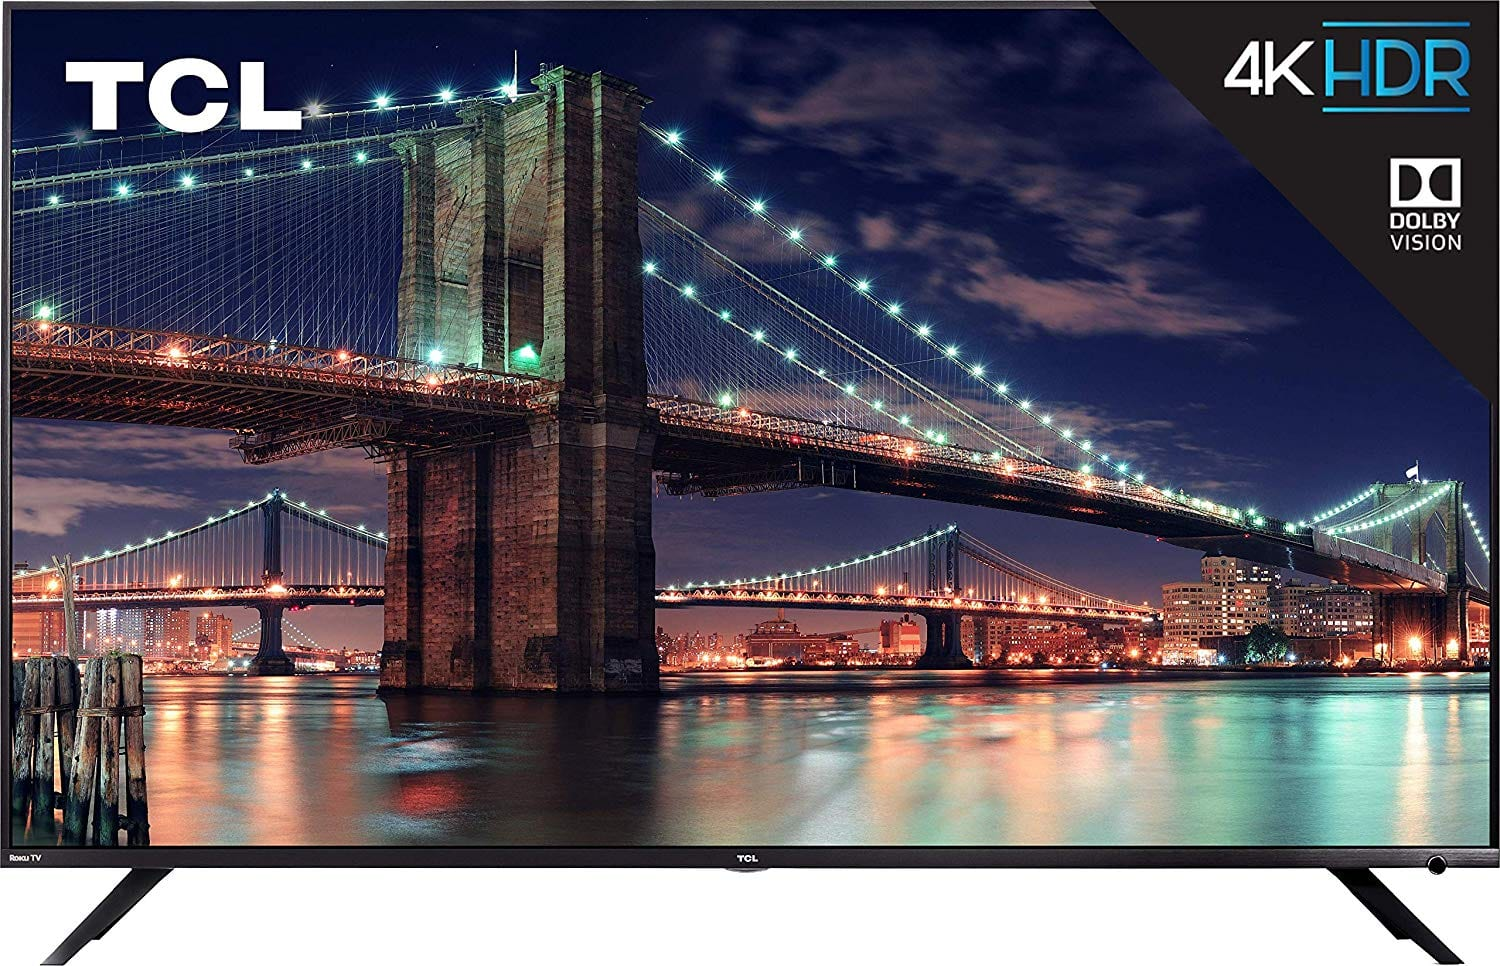 "65"" TCL 65R615 4K UHD HDR Roku Smart LED HDTV (Refurbished) $459.99 + Free Shipping @ Walmart"